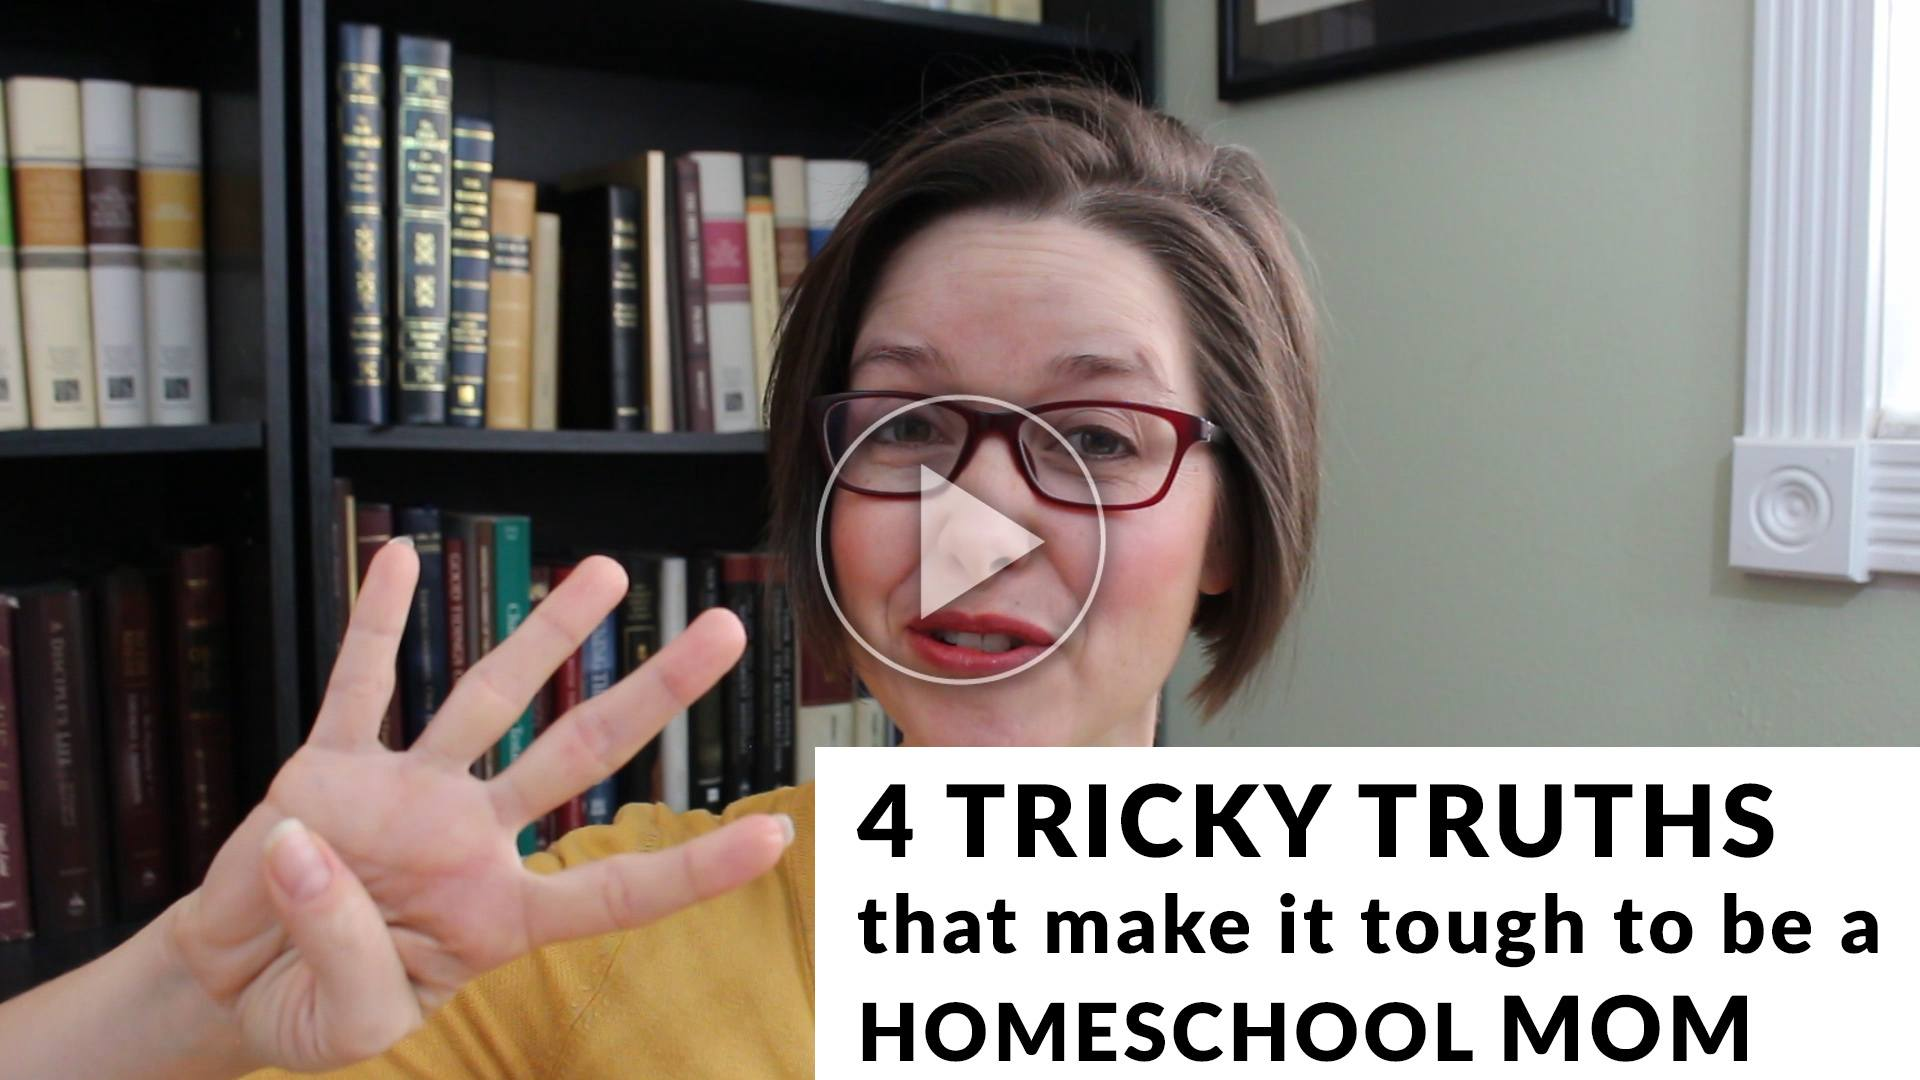 I've spent a lot of time reflecting on what makes homeschooling easier than public school AND what makes it harder. I've also spent a lot of time trying to decide why I kept going. | hard truths about homeschooling | Is homeschooling hard | Is homeschooling worth it | homeschool truths | Disadvantages | Is it difficult to homeschool |